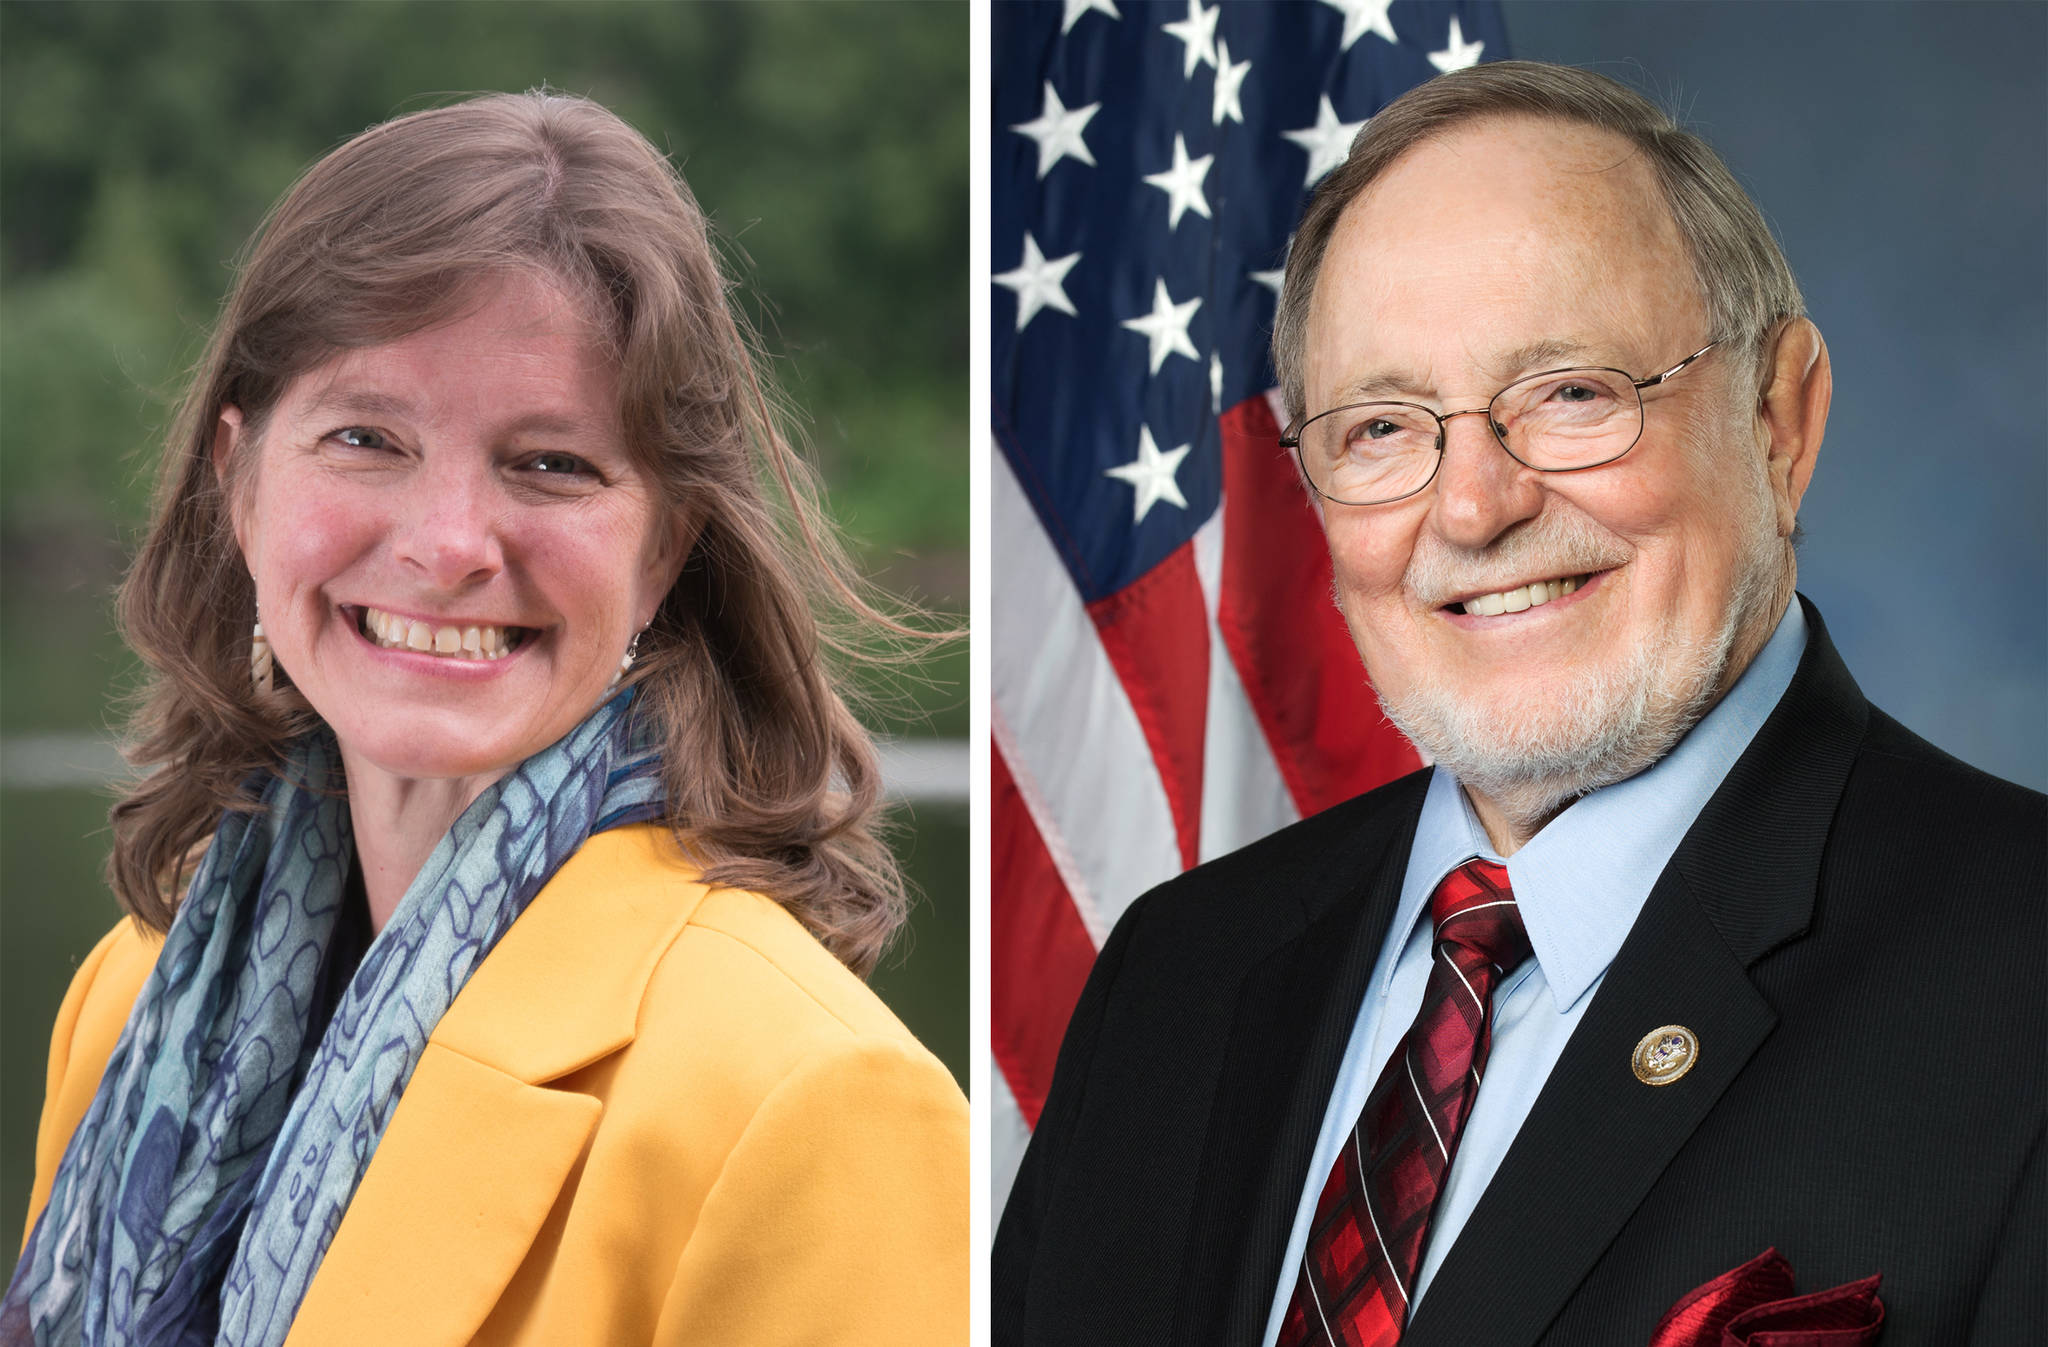 Alyse Galvin, indpendent candidate for U.S. House of Representatives, and Don Young, Republican incumbent candidate for U.S. House, are seen in a composite image using photographs submitted by their campaigns. (Composite image)